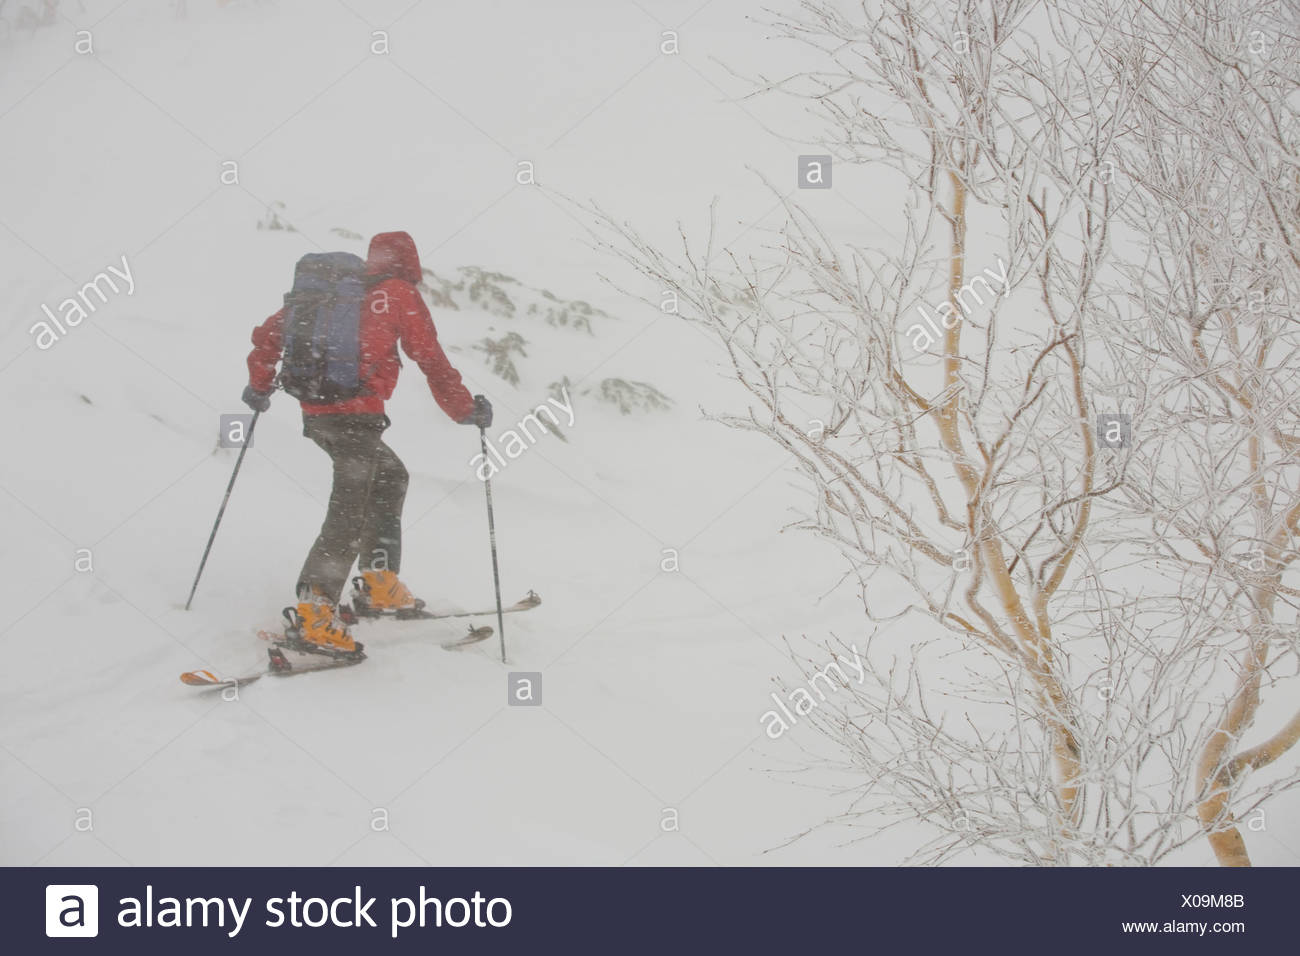 A skier uptracking in snowy conditions in Furanodake backcountry, Hokkaido, Japan - Stock Image